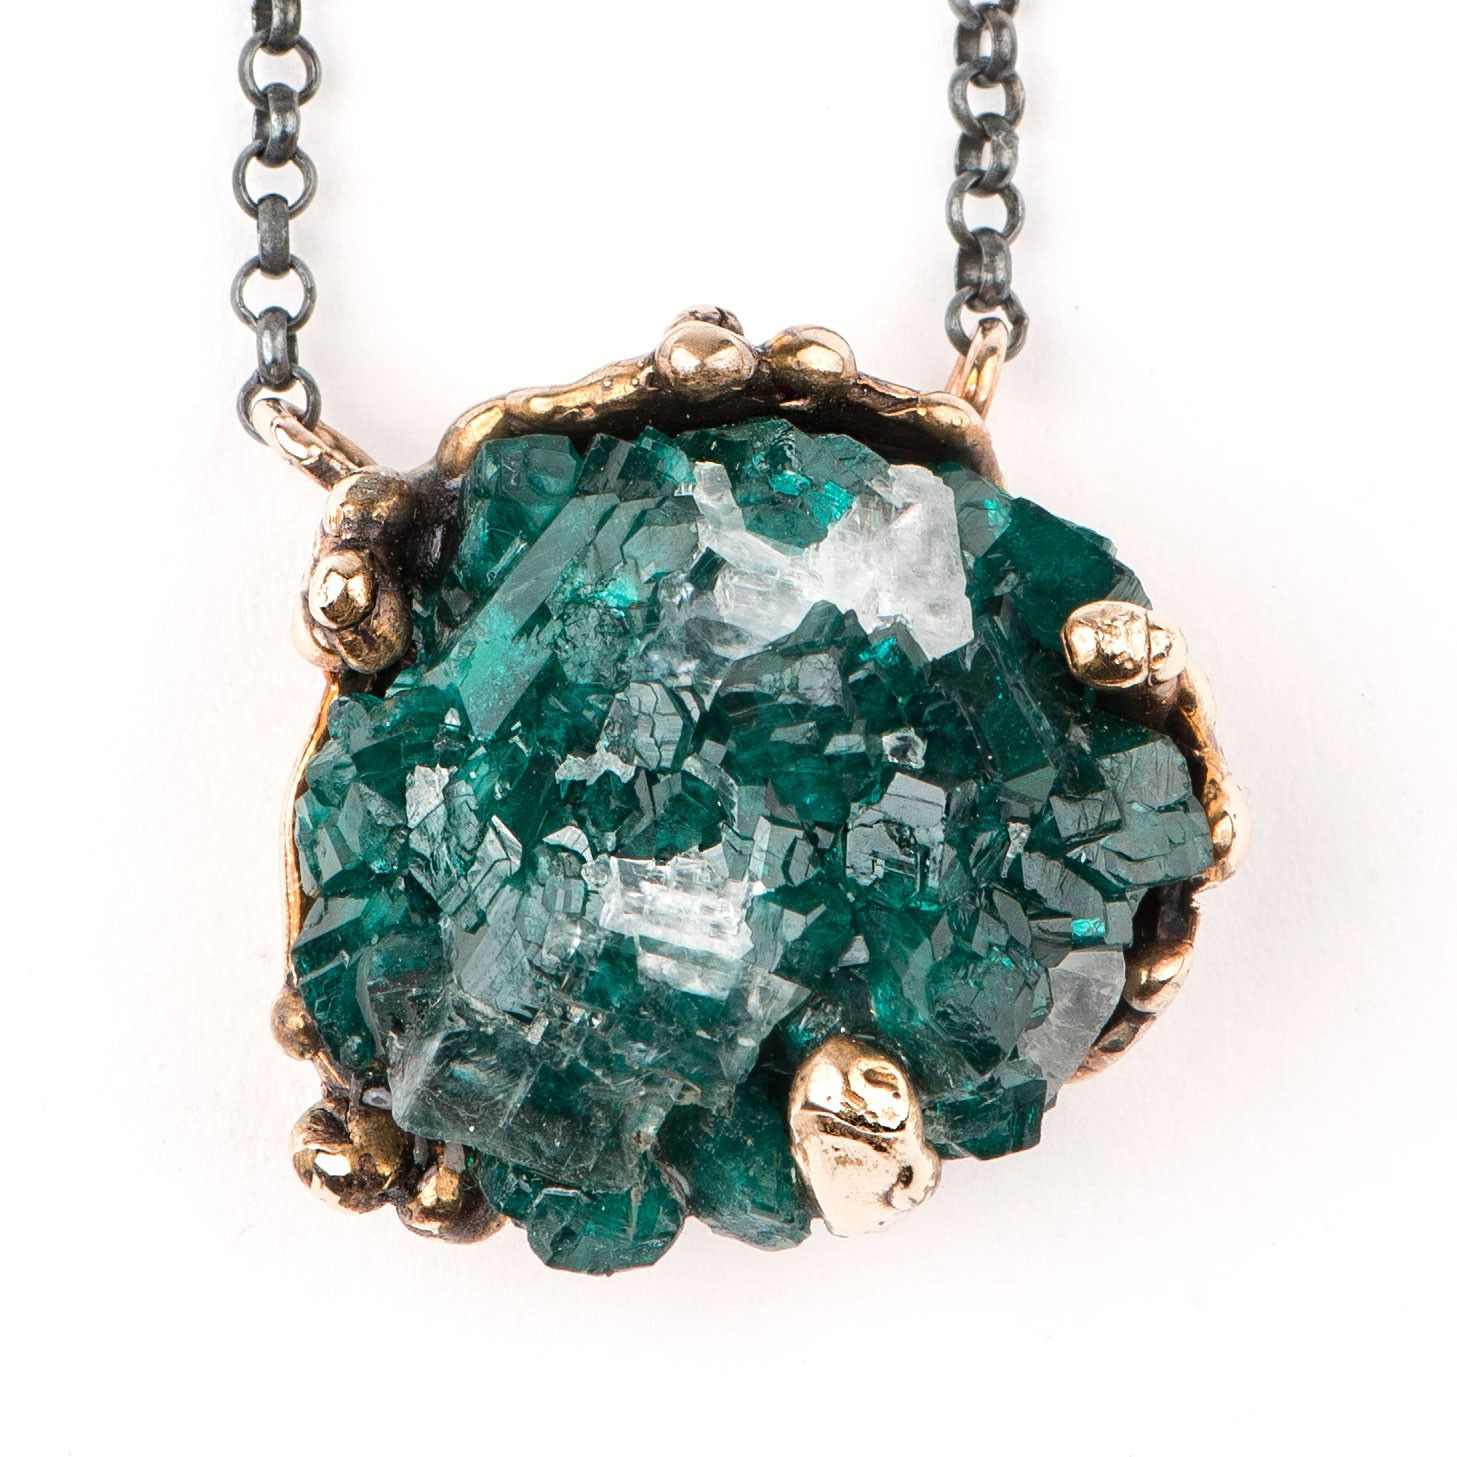 Druzy rough dioptase crystal necklace with silver chain one of a druzy rough dioptase crystal necklace with silver chain one of a kind for men and women aloadofball Gallery